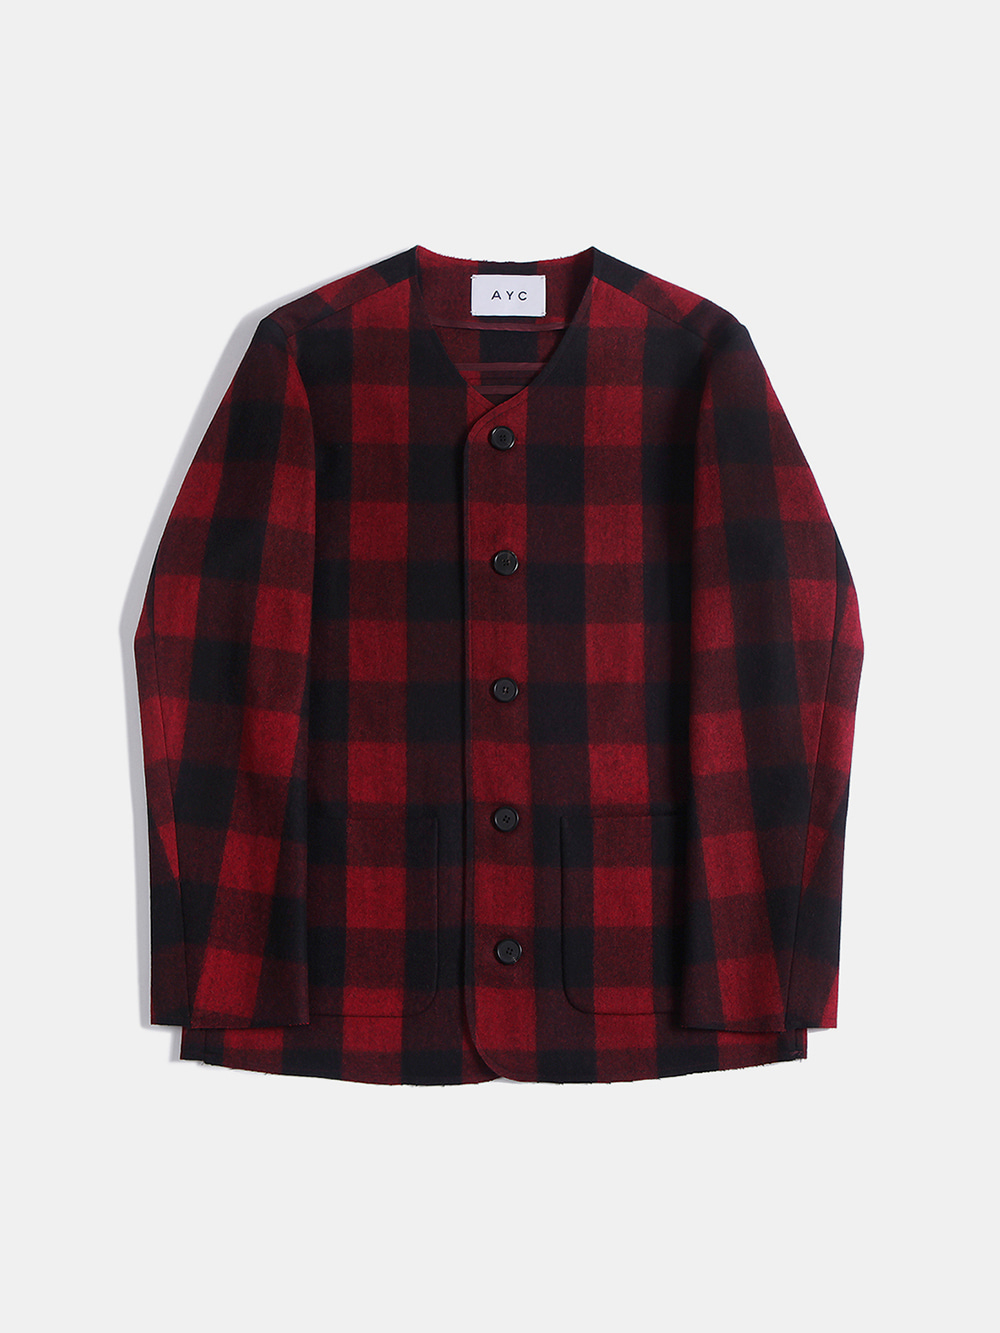 Cut-off Crew Neck Jacket (Red)